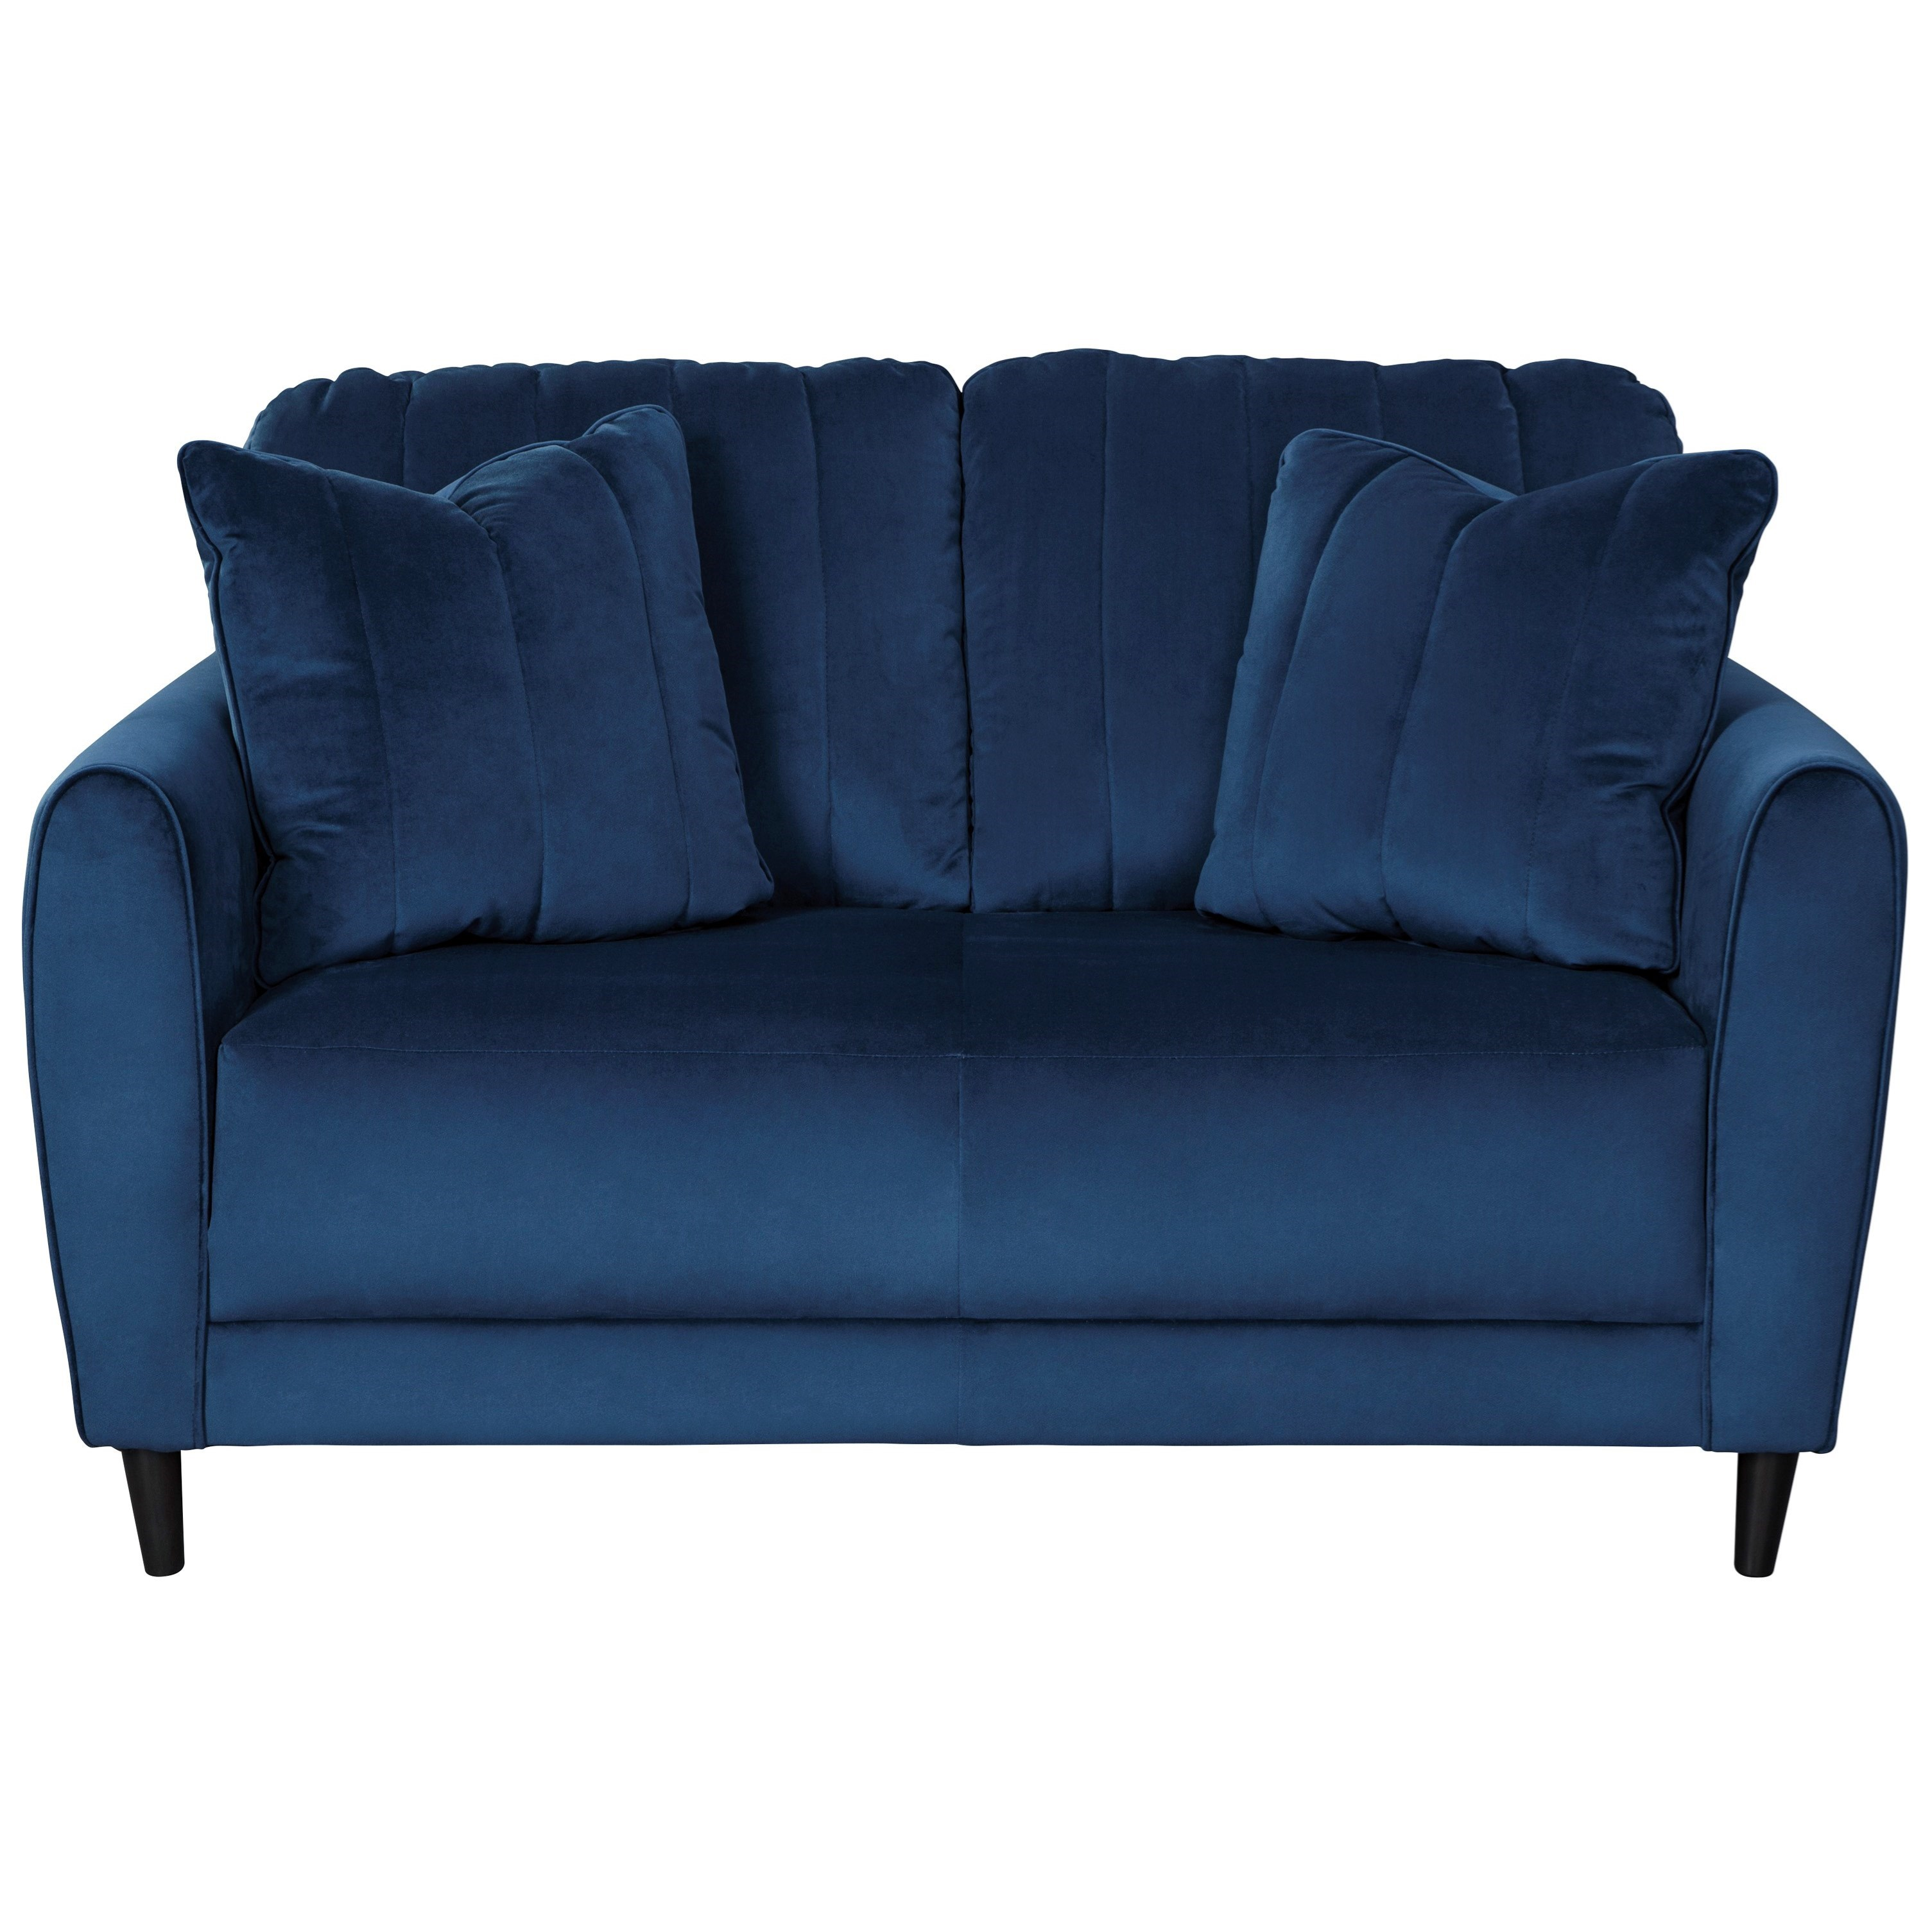 Enderlin Loveseat by Signature at Walker's Furniture